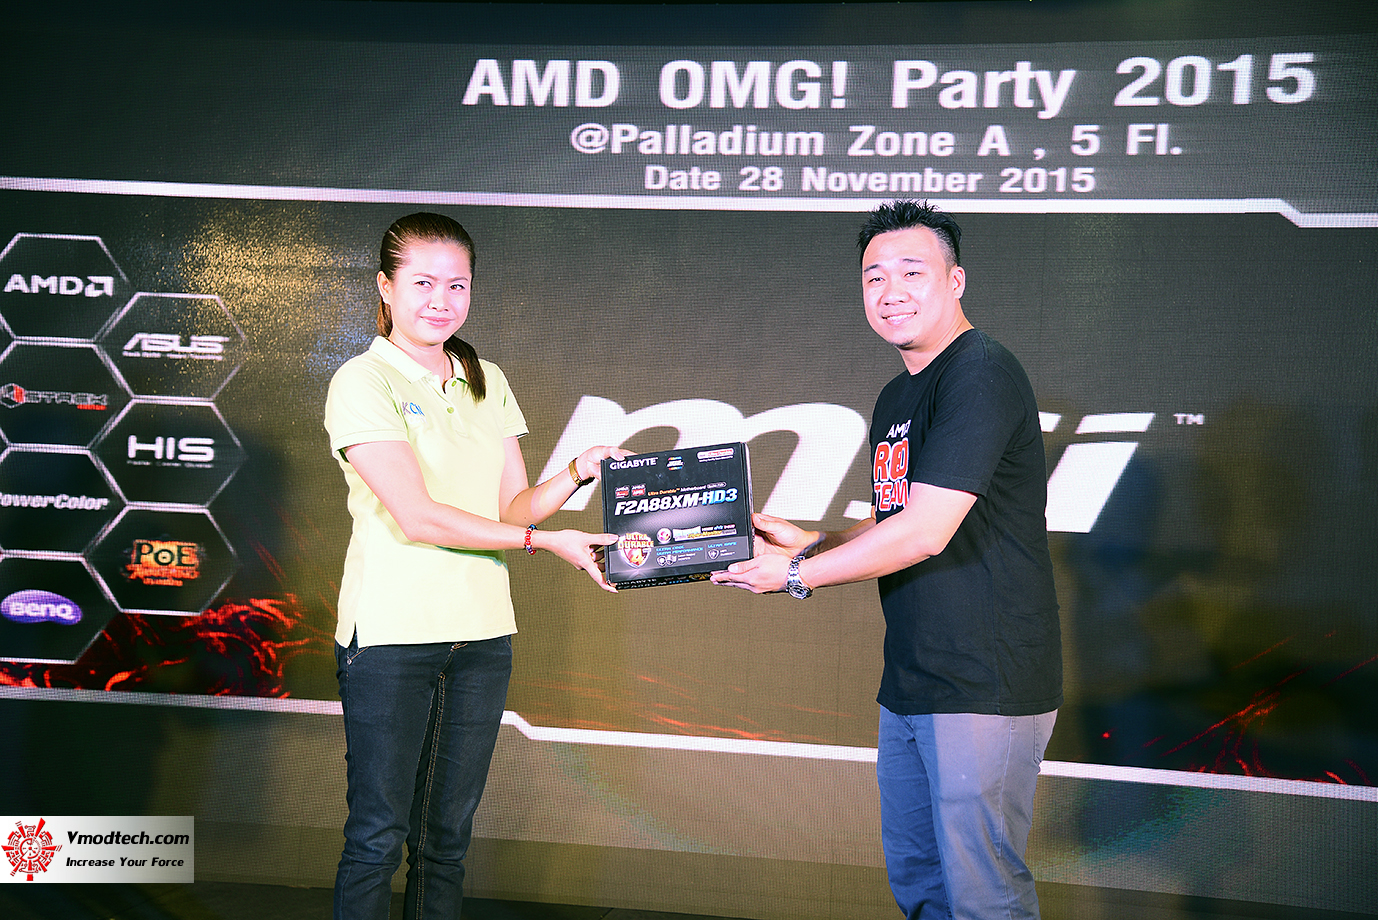 dsc 6809 AMD OMG! Party 2015 (AMD Overclock Modding Gaming Party 2015)